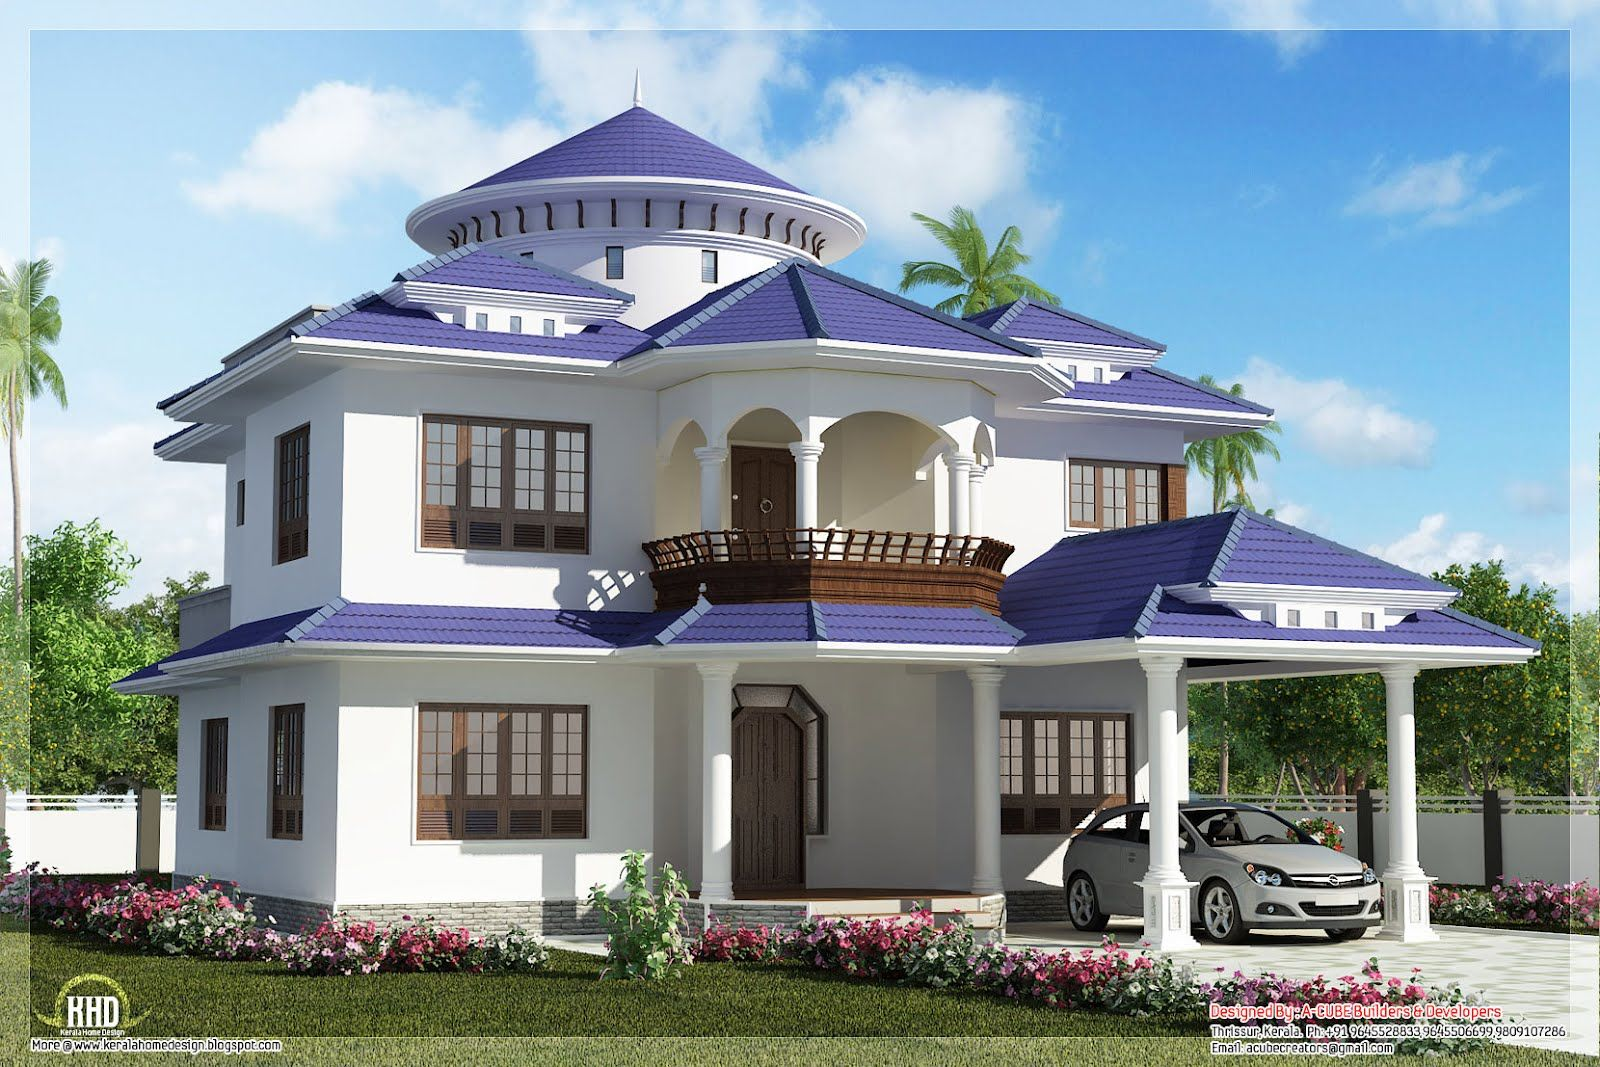 dream houses Beautiful dream home design in 2800 sqfeet